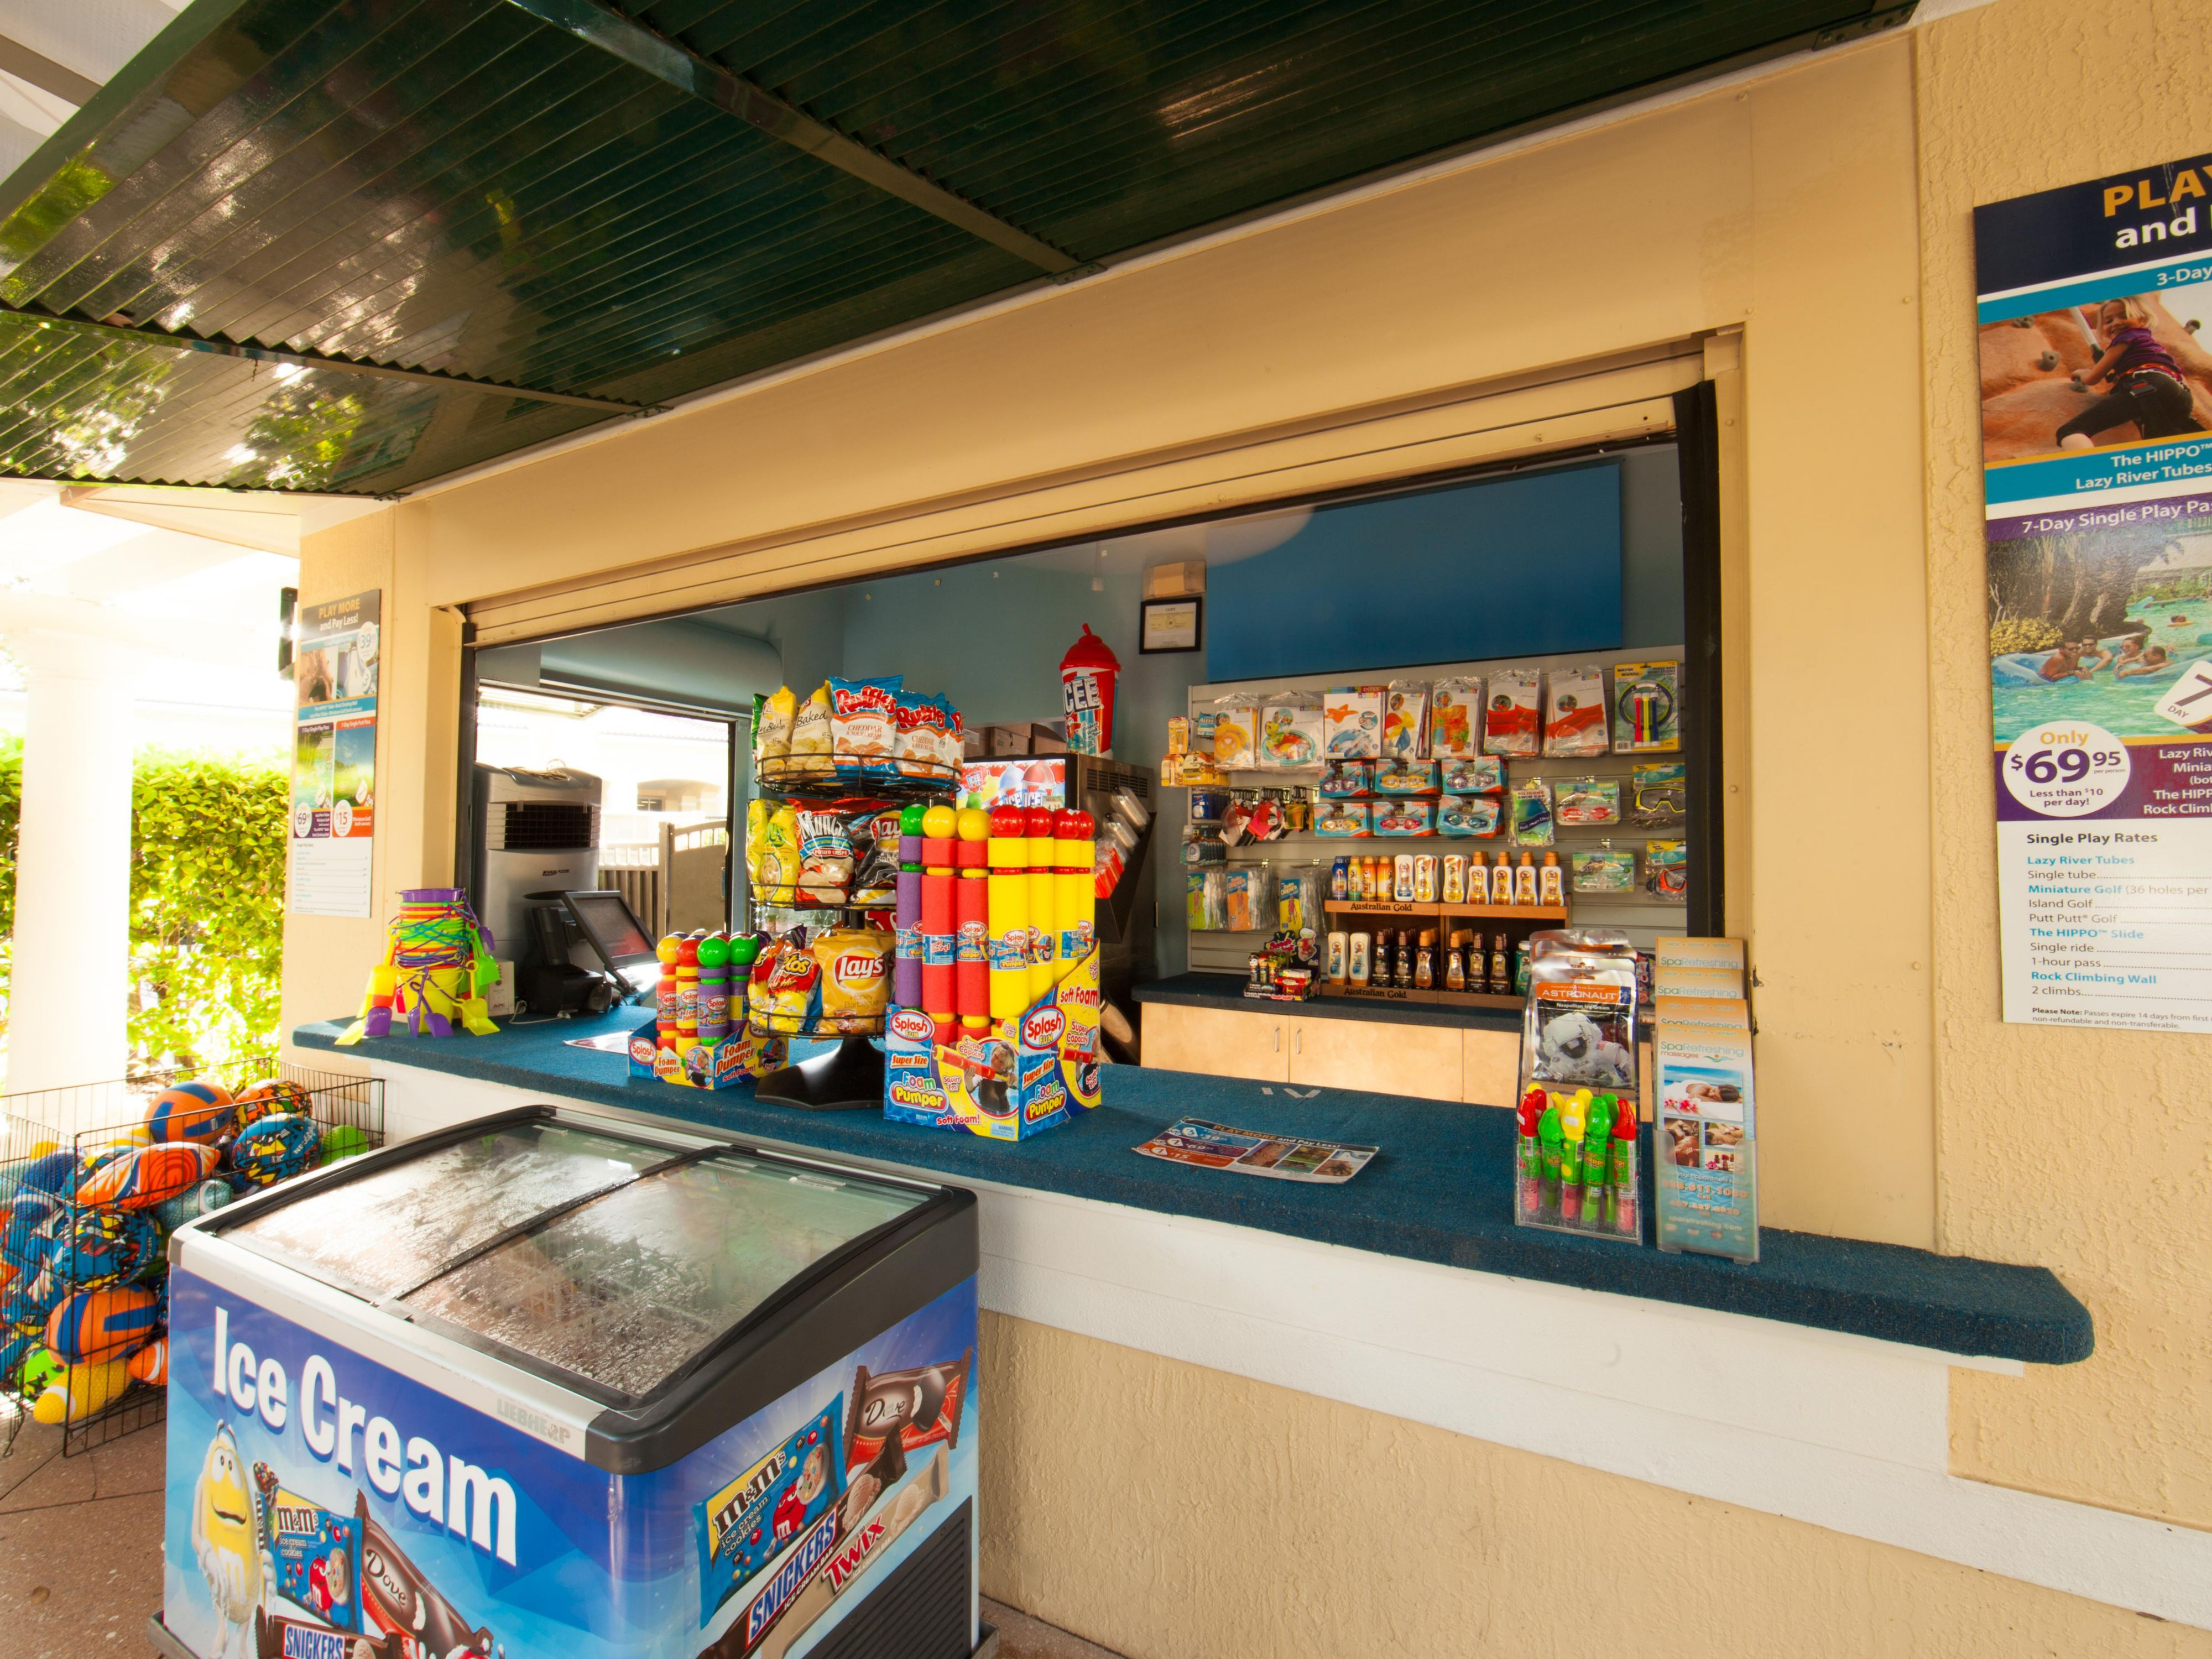 Grab much needed items at the Splash Shack